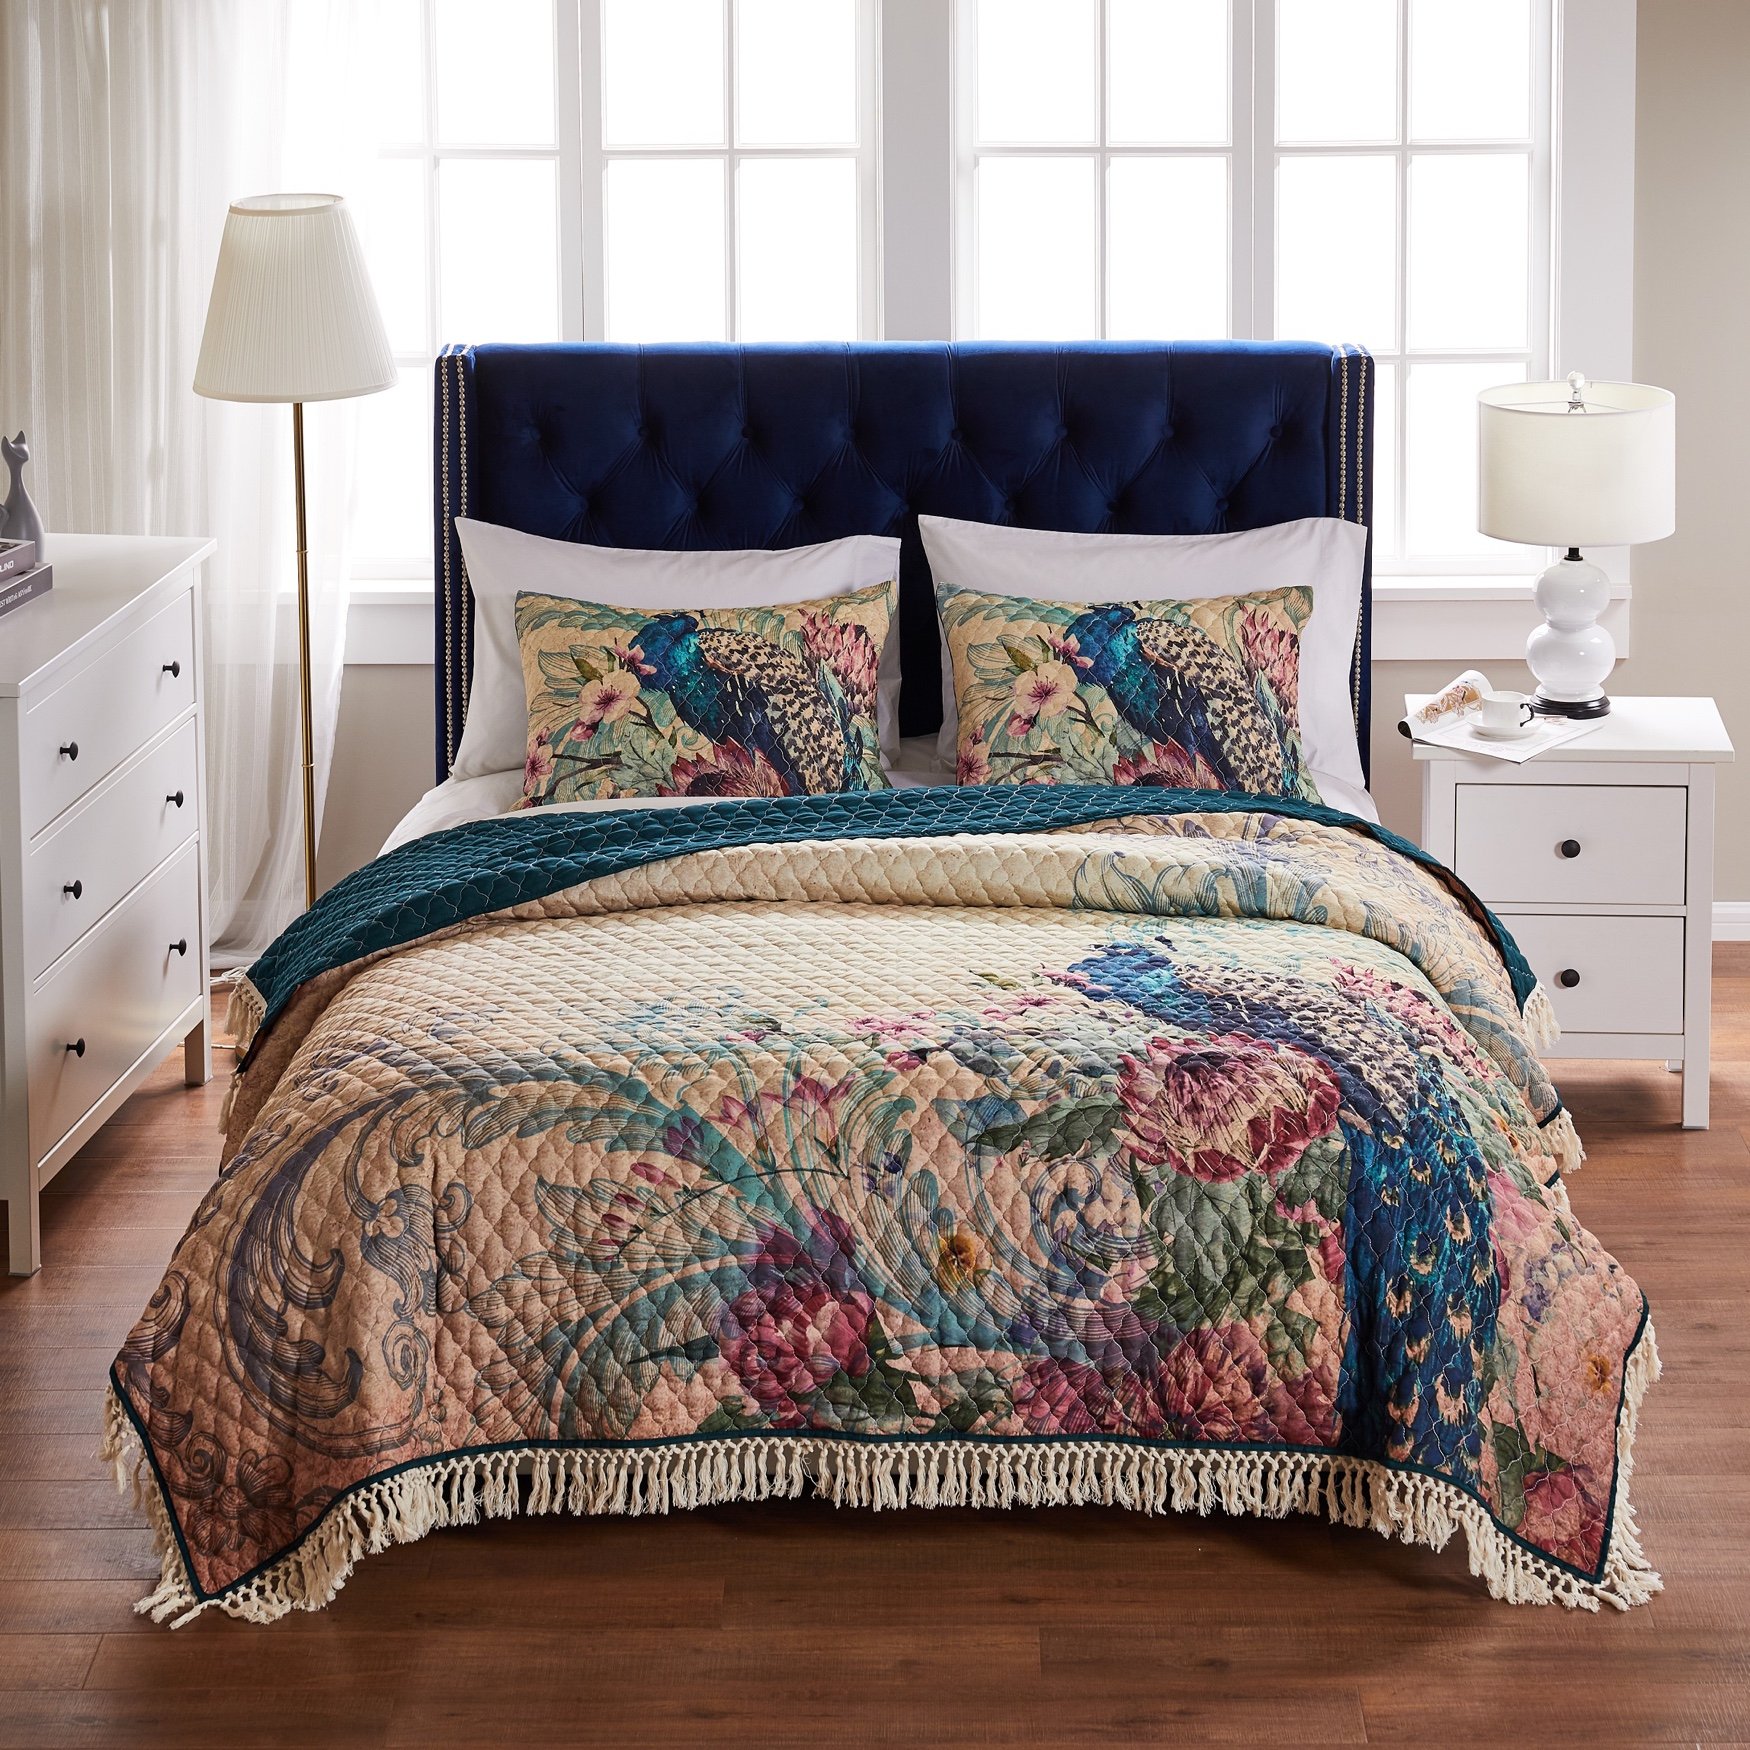 Barefoot Bungalow Eden Peacock Quilt and Pillow Sham Set,